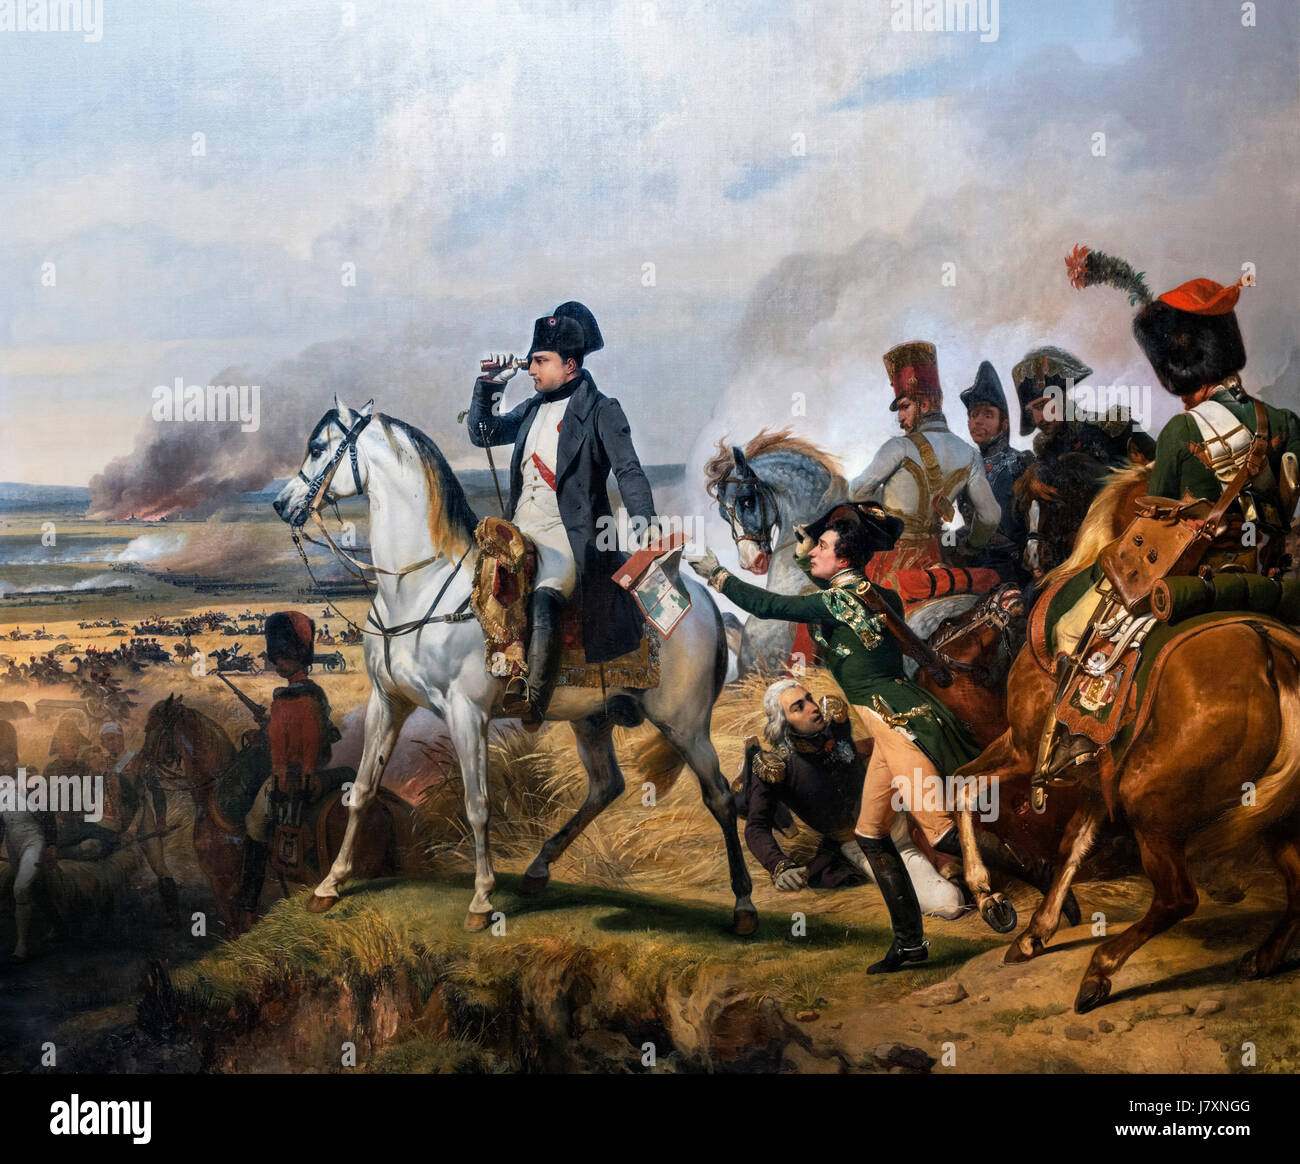 Napoleon Bonaparte at the Battle of Wagram on 6th July 1809 by Horace Vernet, oil on canvas, 1836. - Stock Image